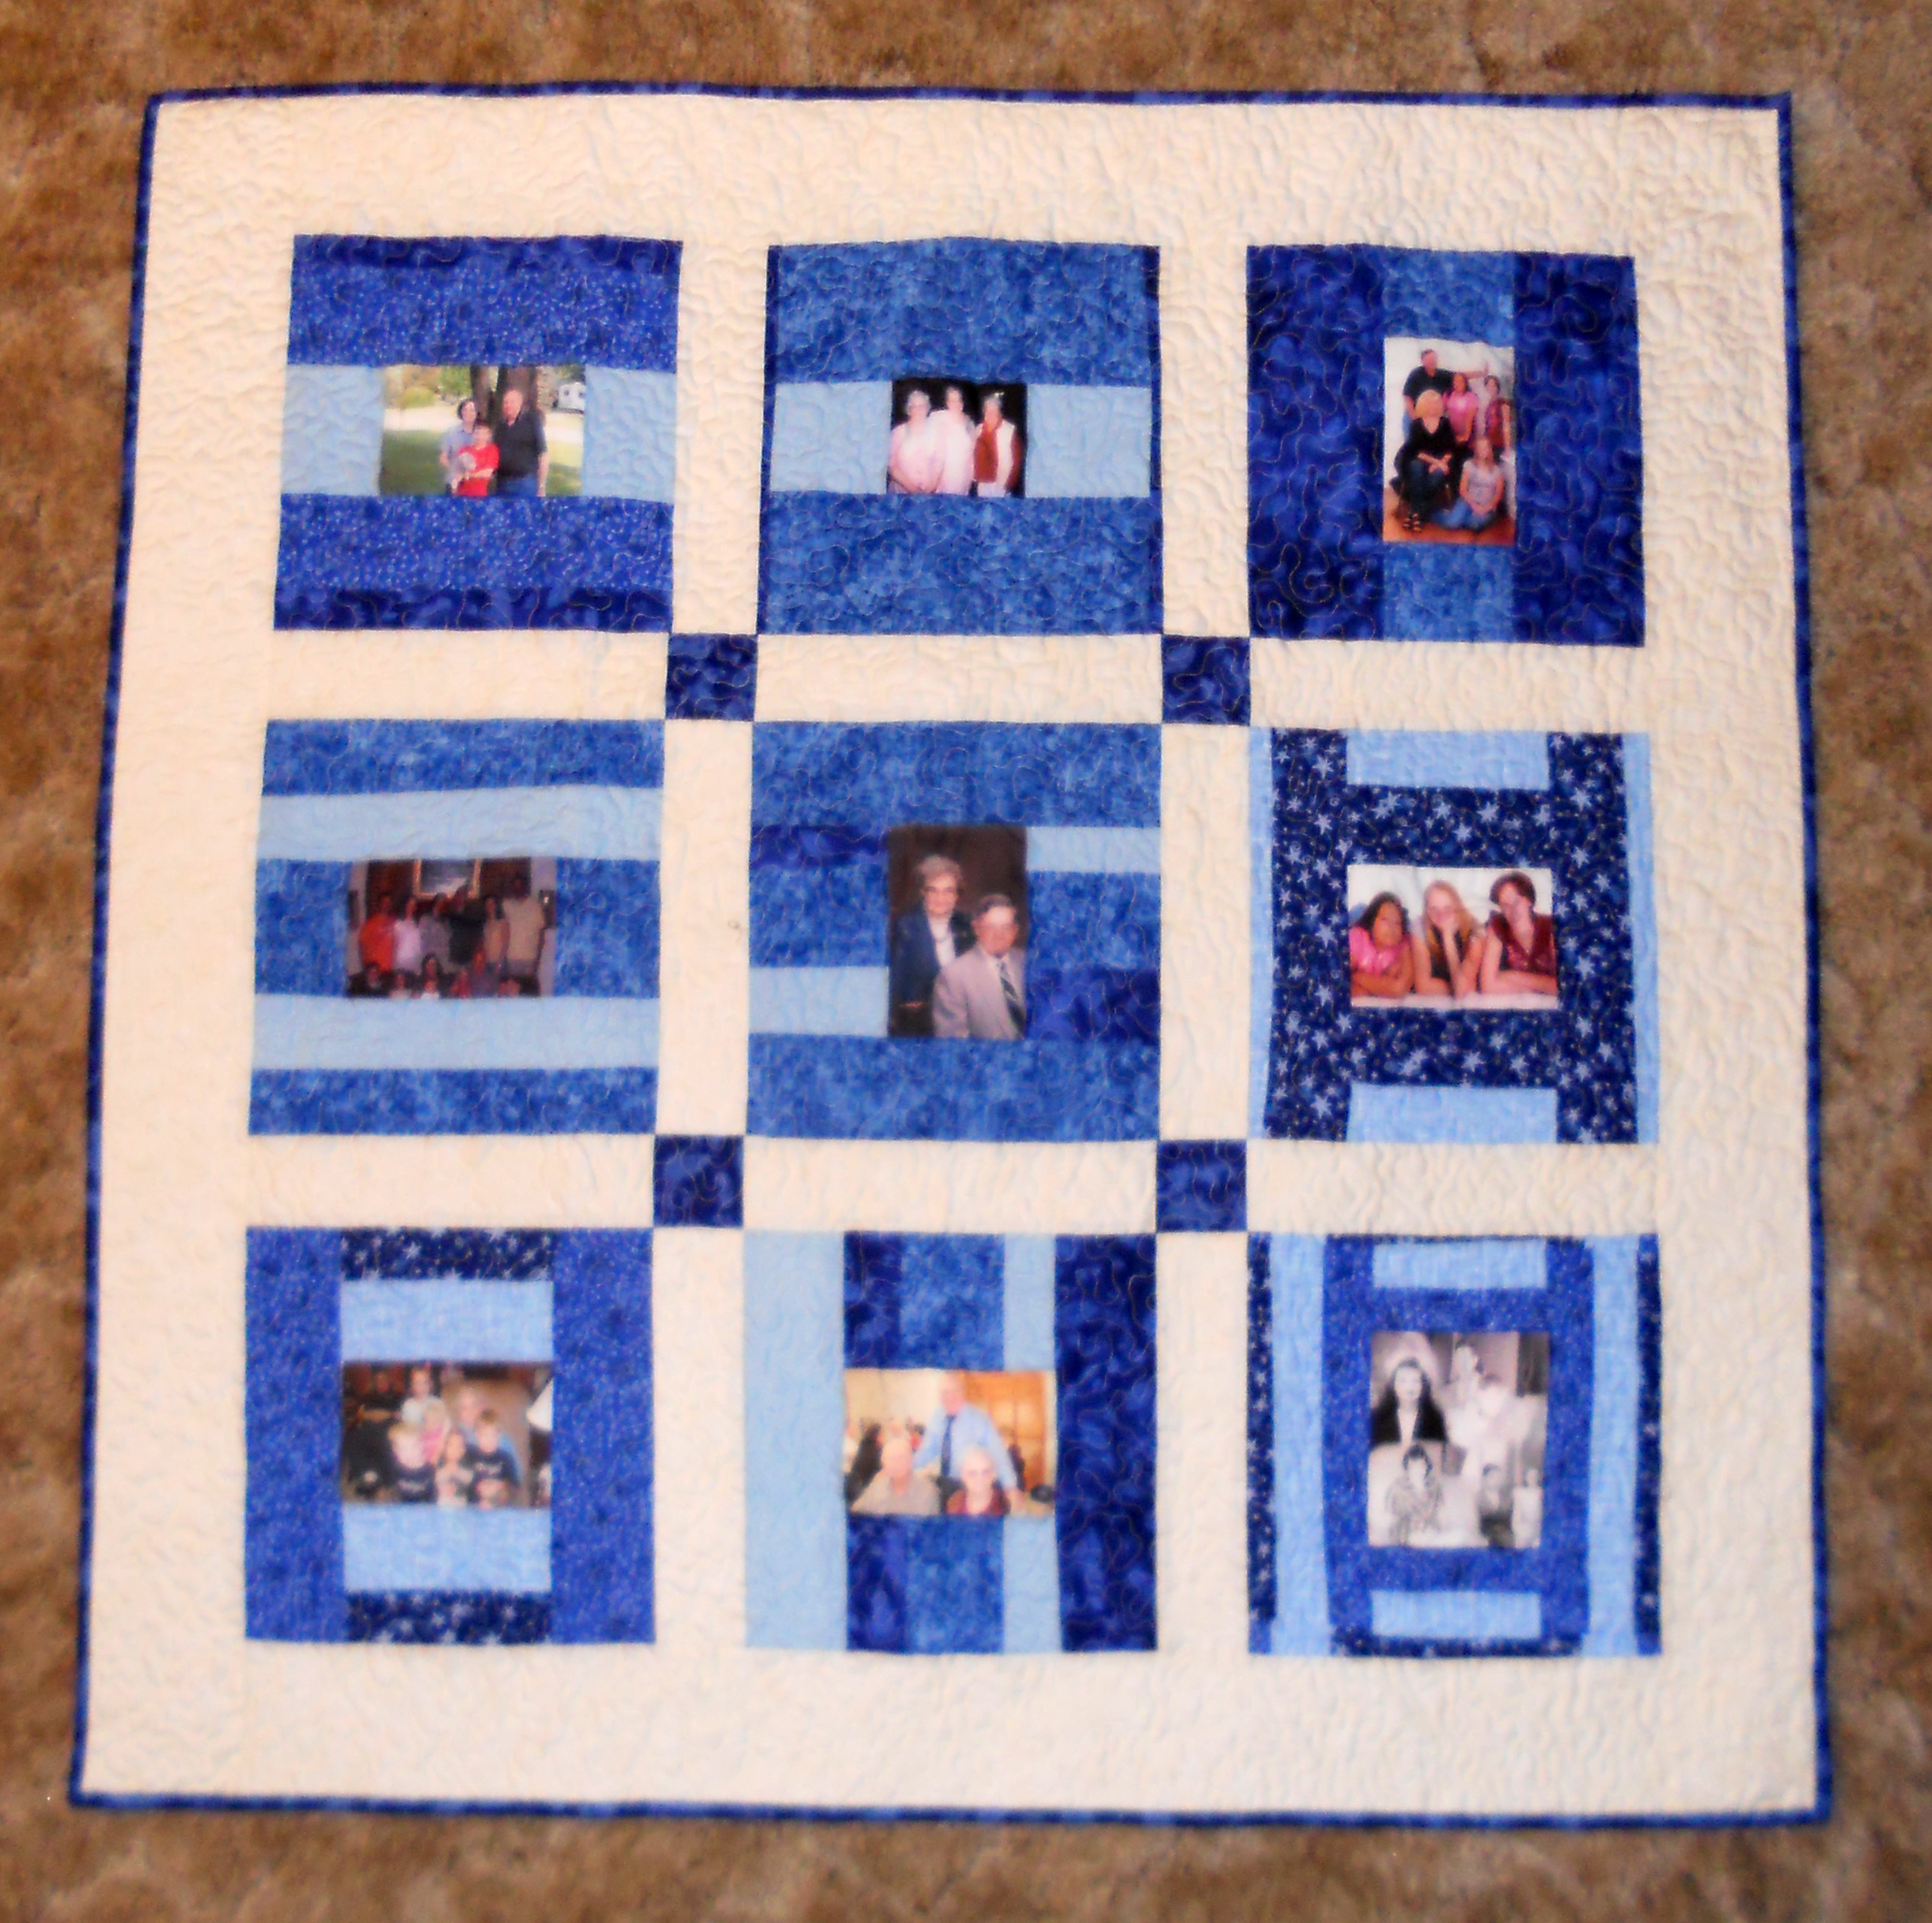 Grama's photo quilt hanging